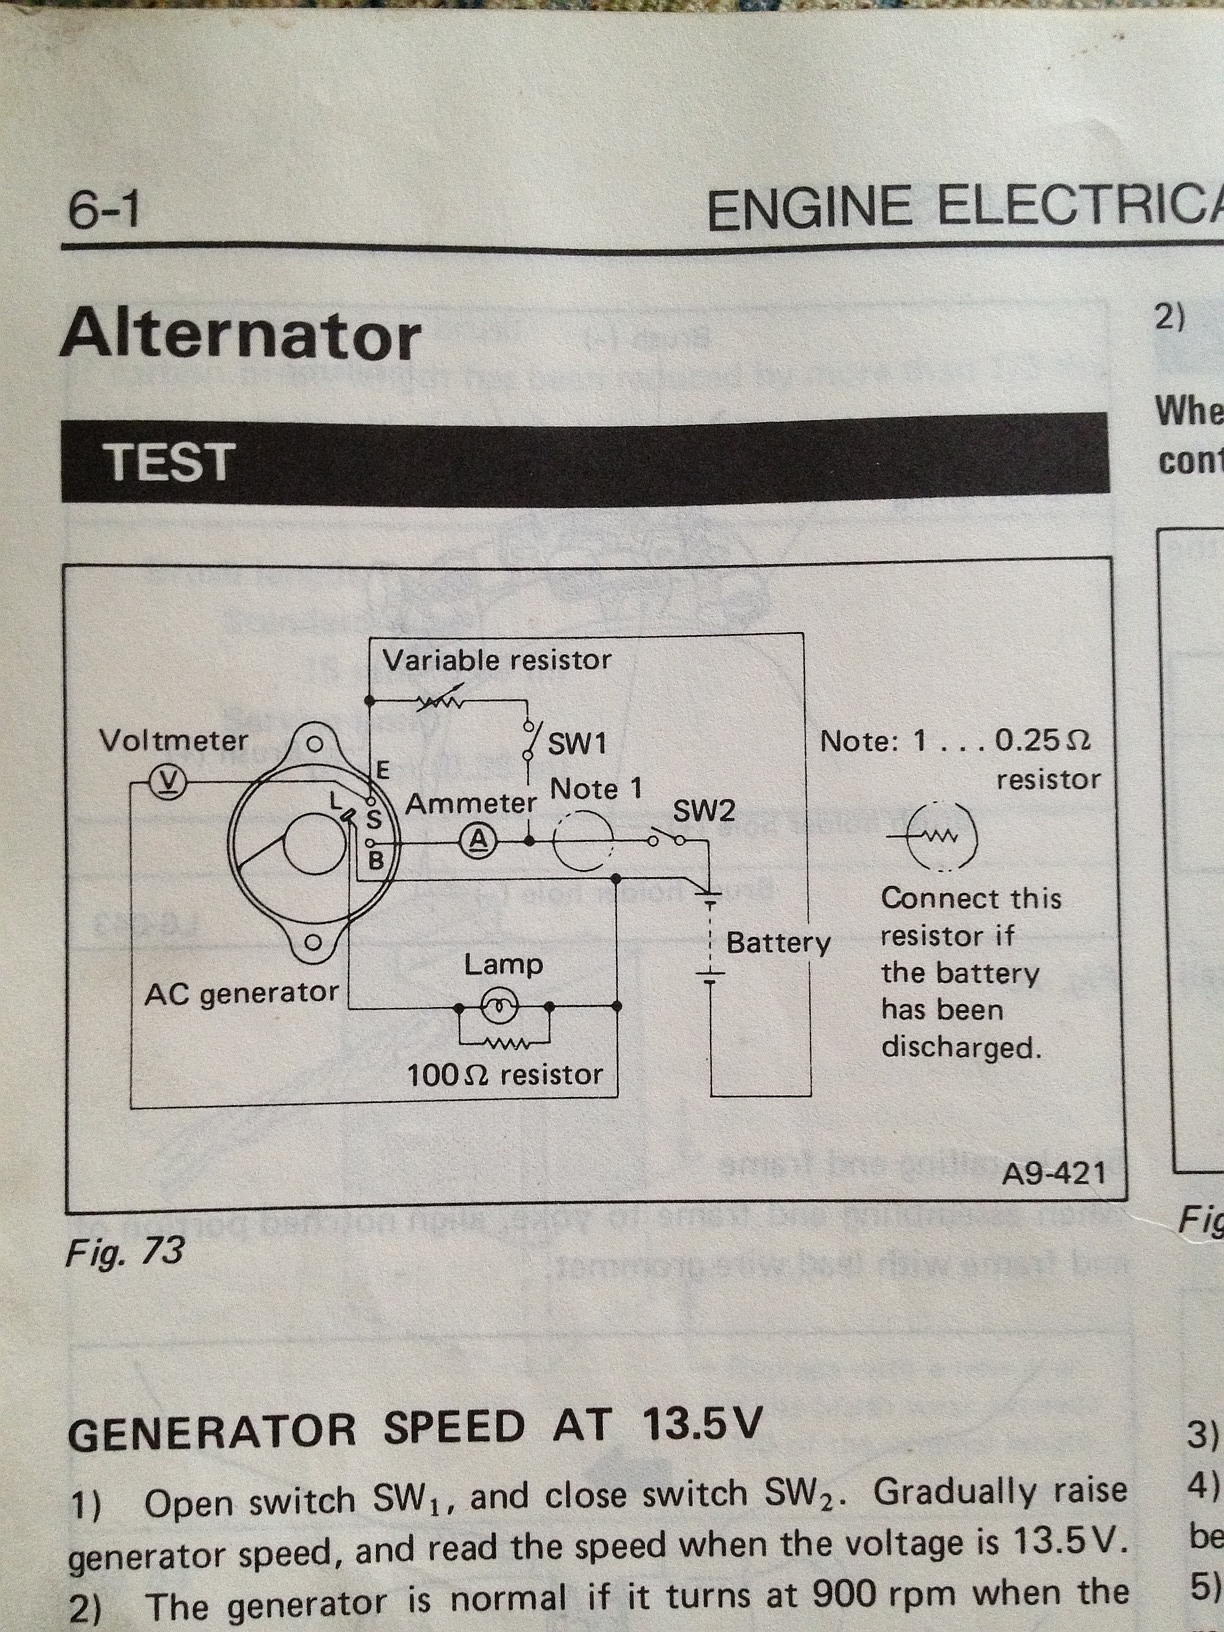 Subaru Leone Wiring Diagram Trusted Diagrams 1984 Gl Ignition